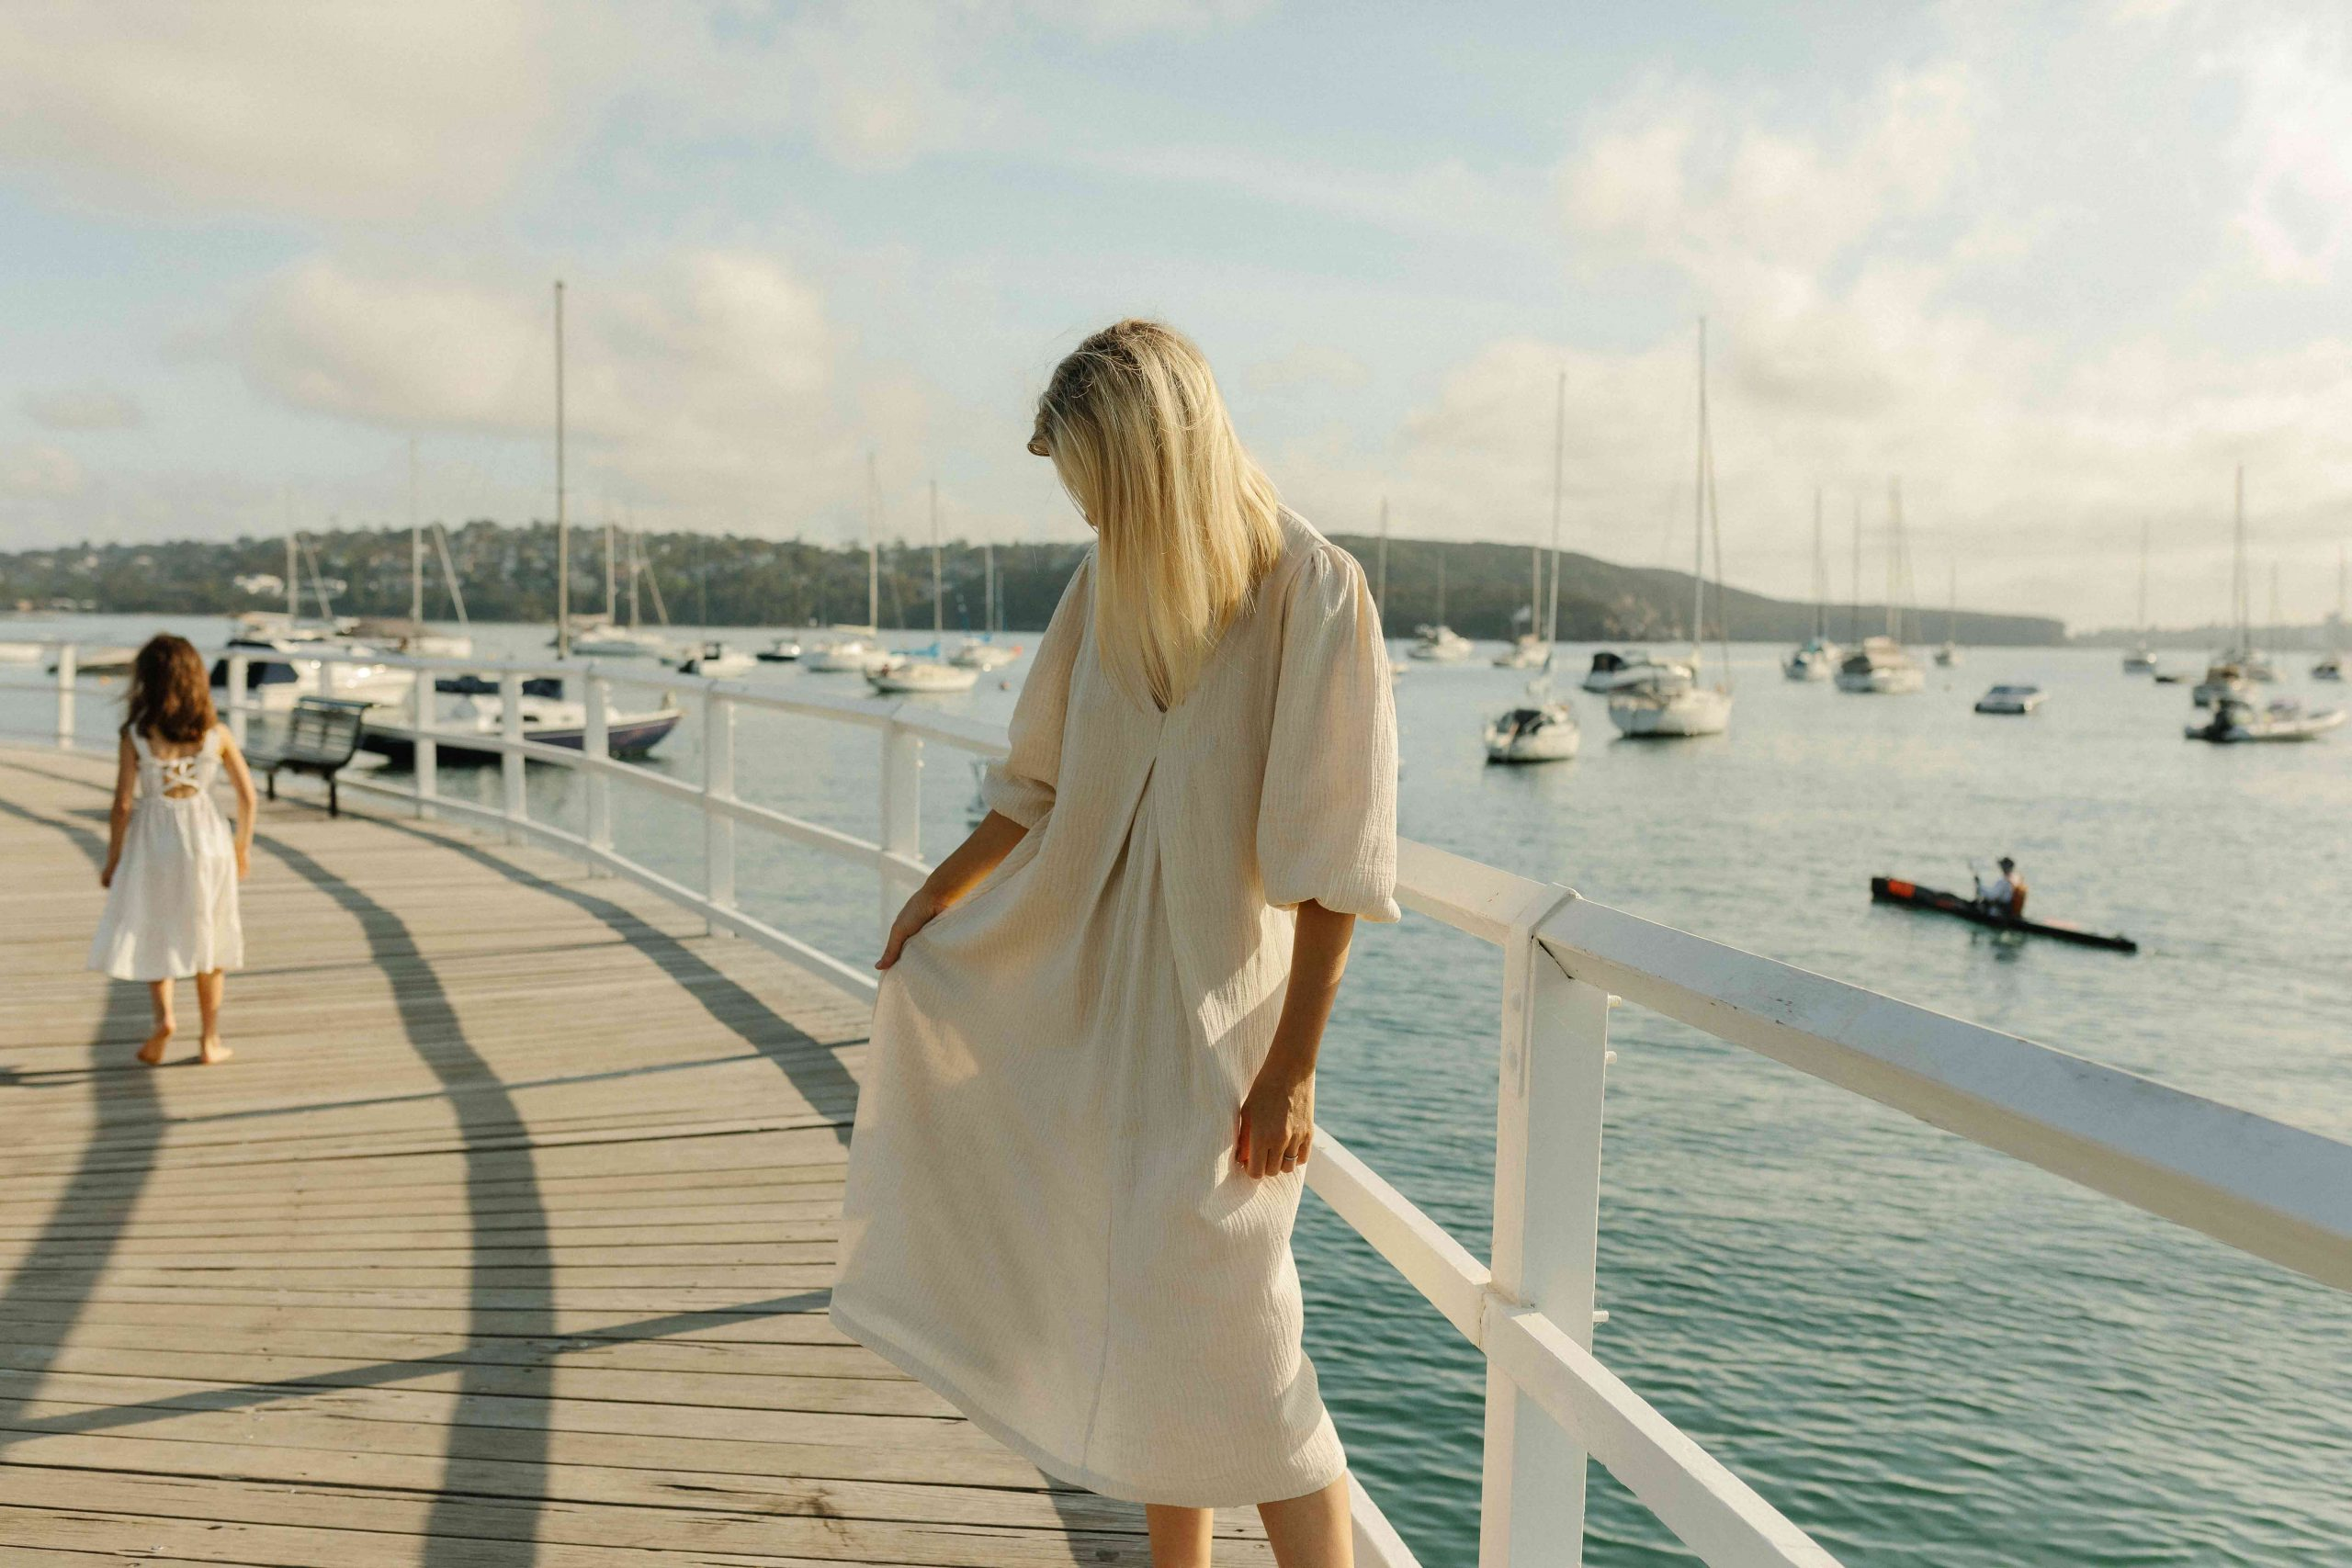 Introducing ALULU: Swimwear & Loungewear You'll Want to Live in All Summer Long